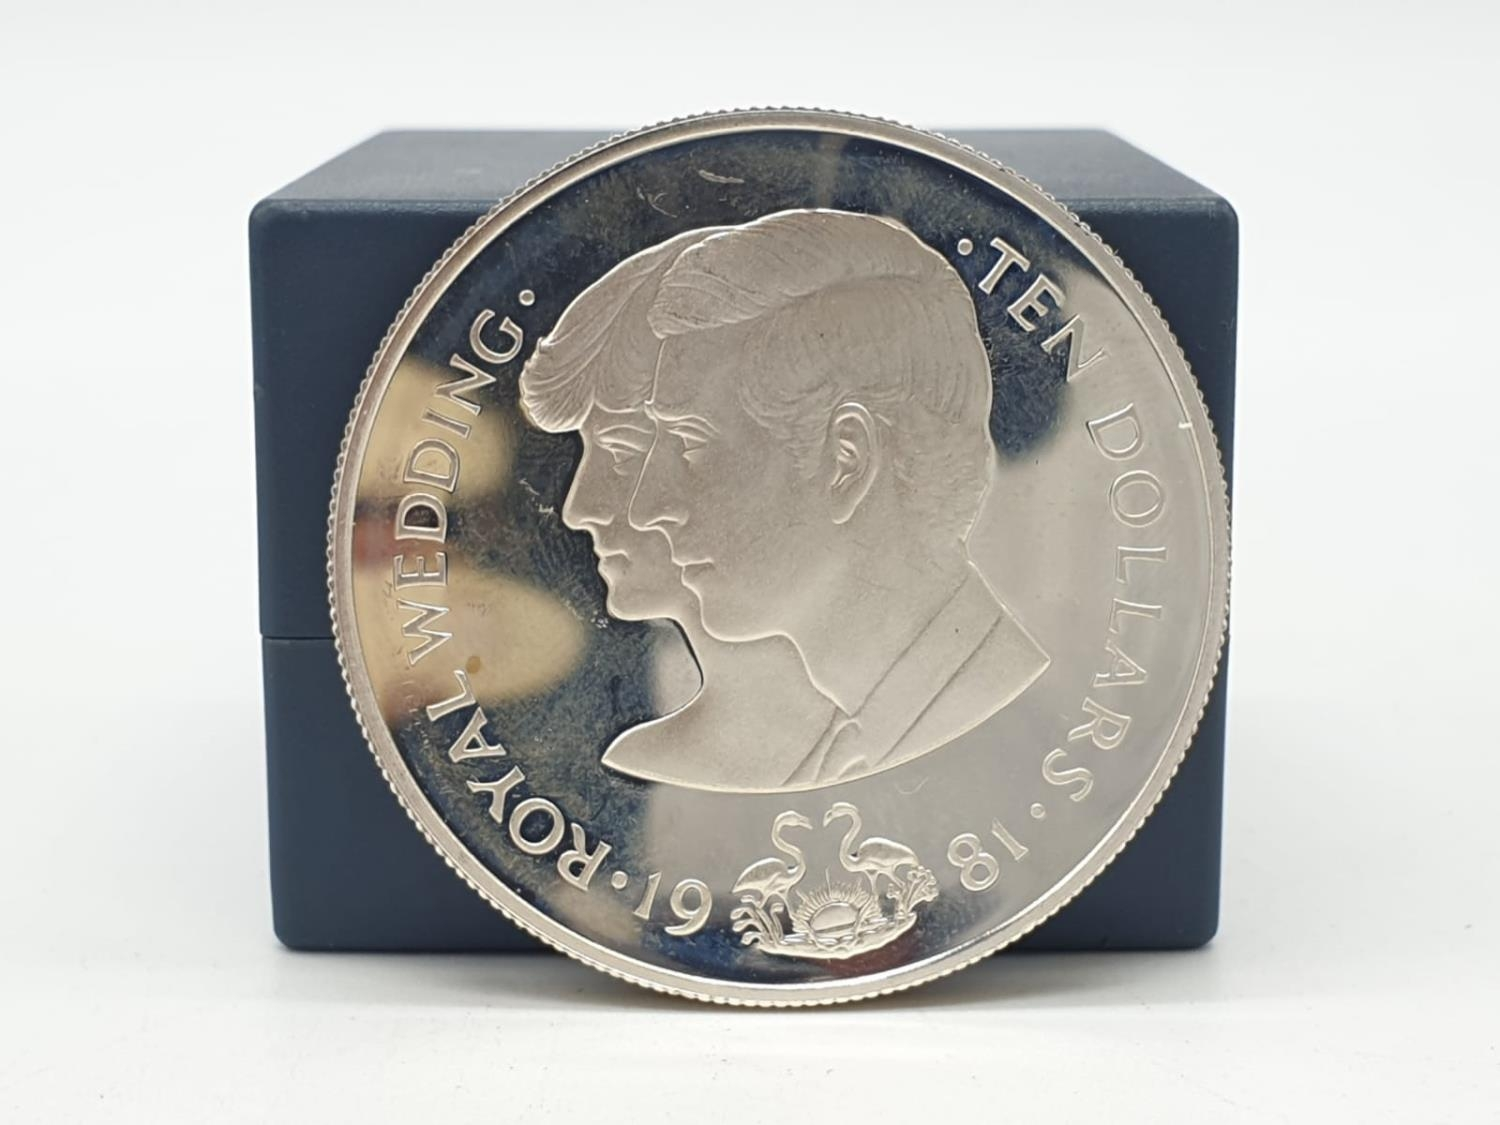 Silver Commemorative Coin of the Royal Wedding 1981 10 Dollars The commonwealth of the Bahamas 28.5g - Image 2 of 3